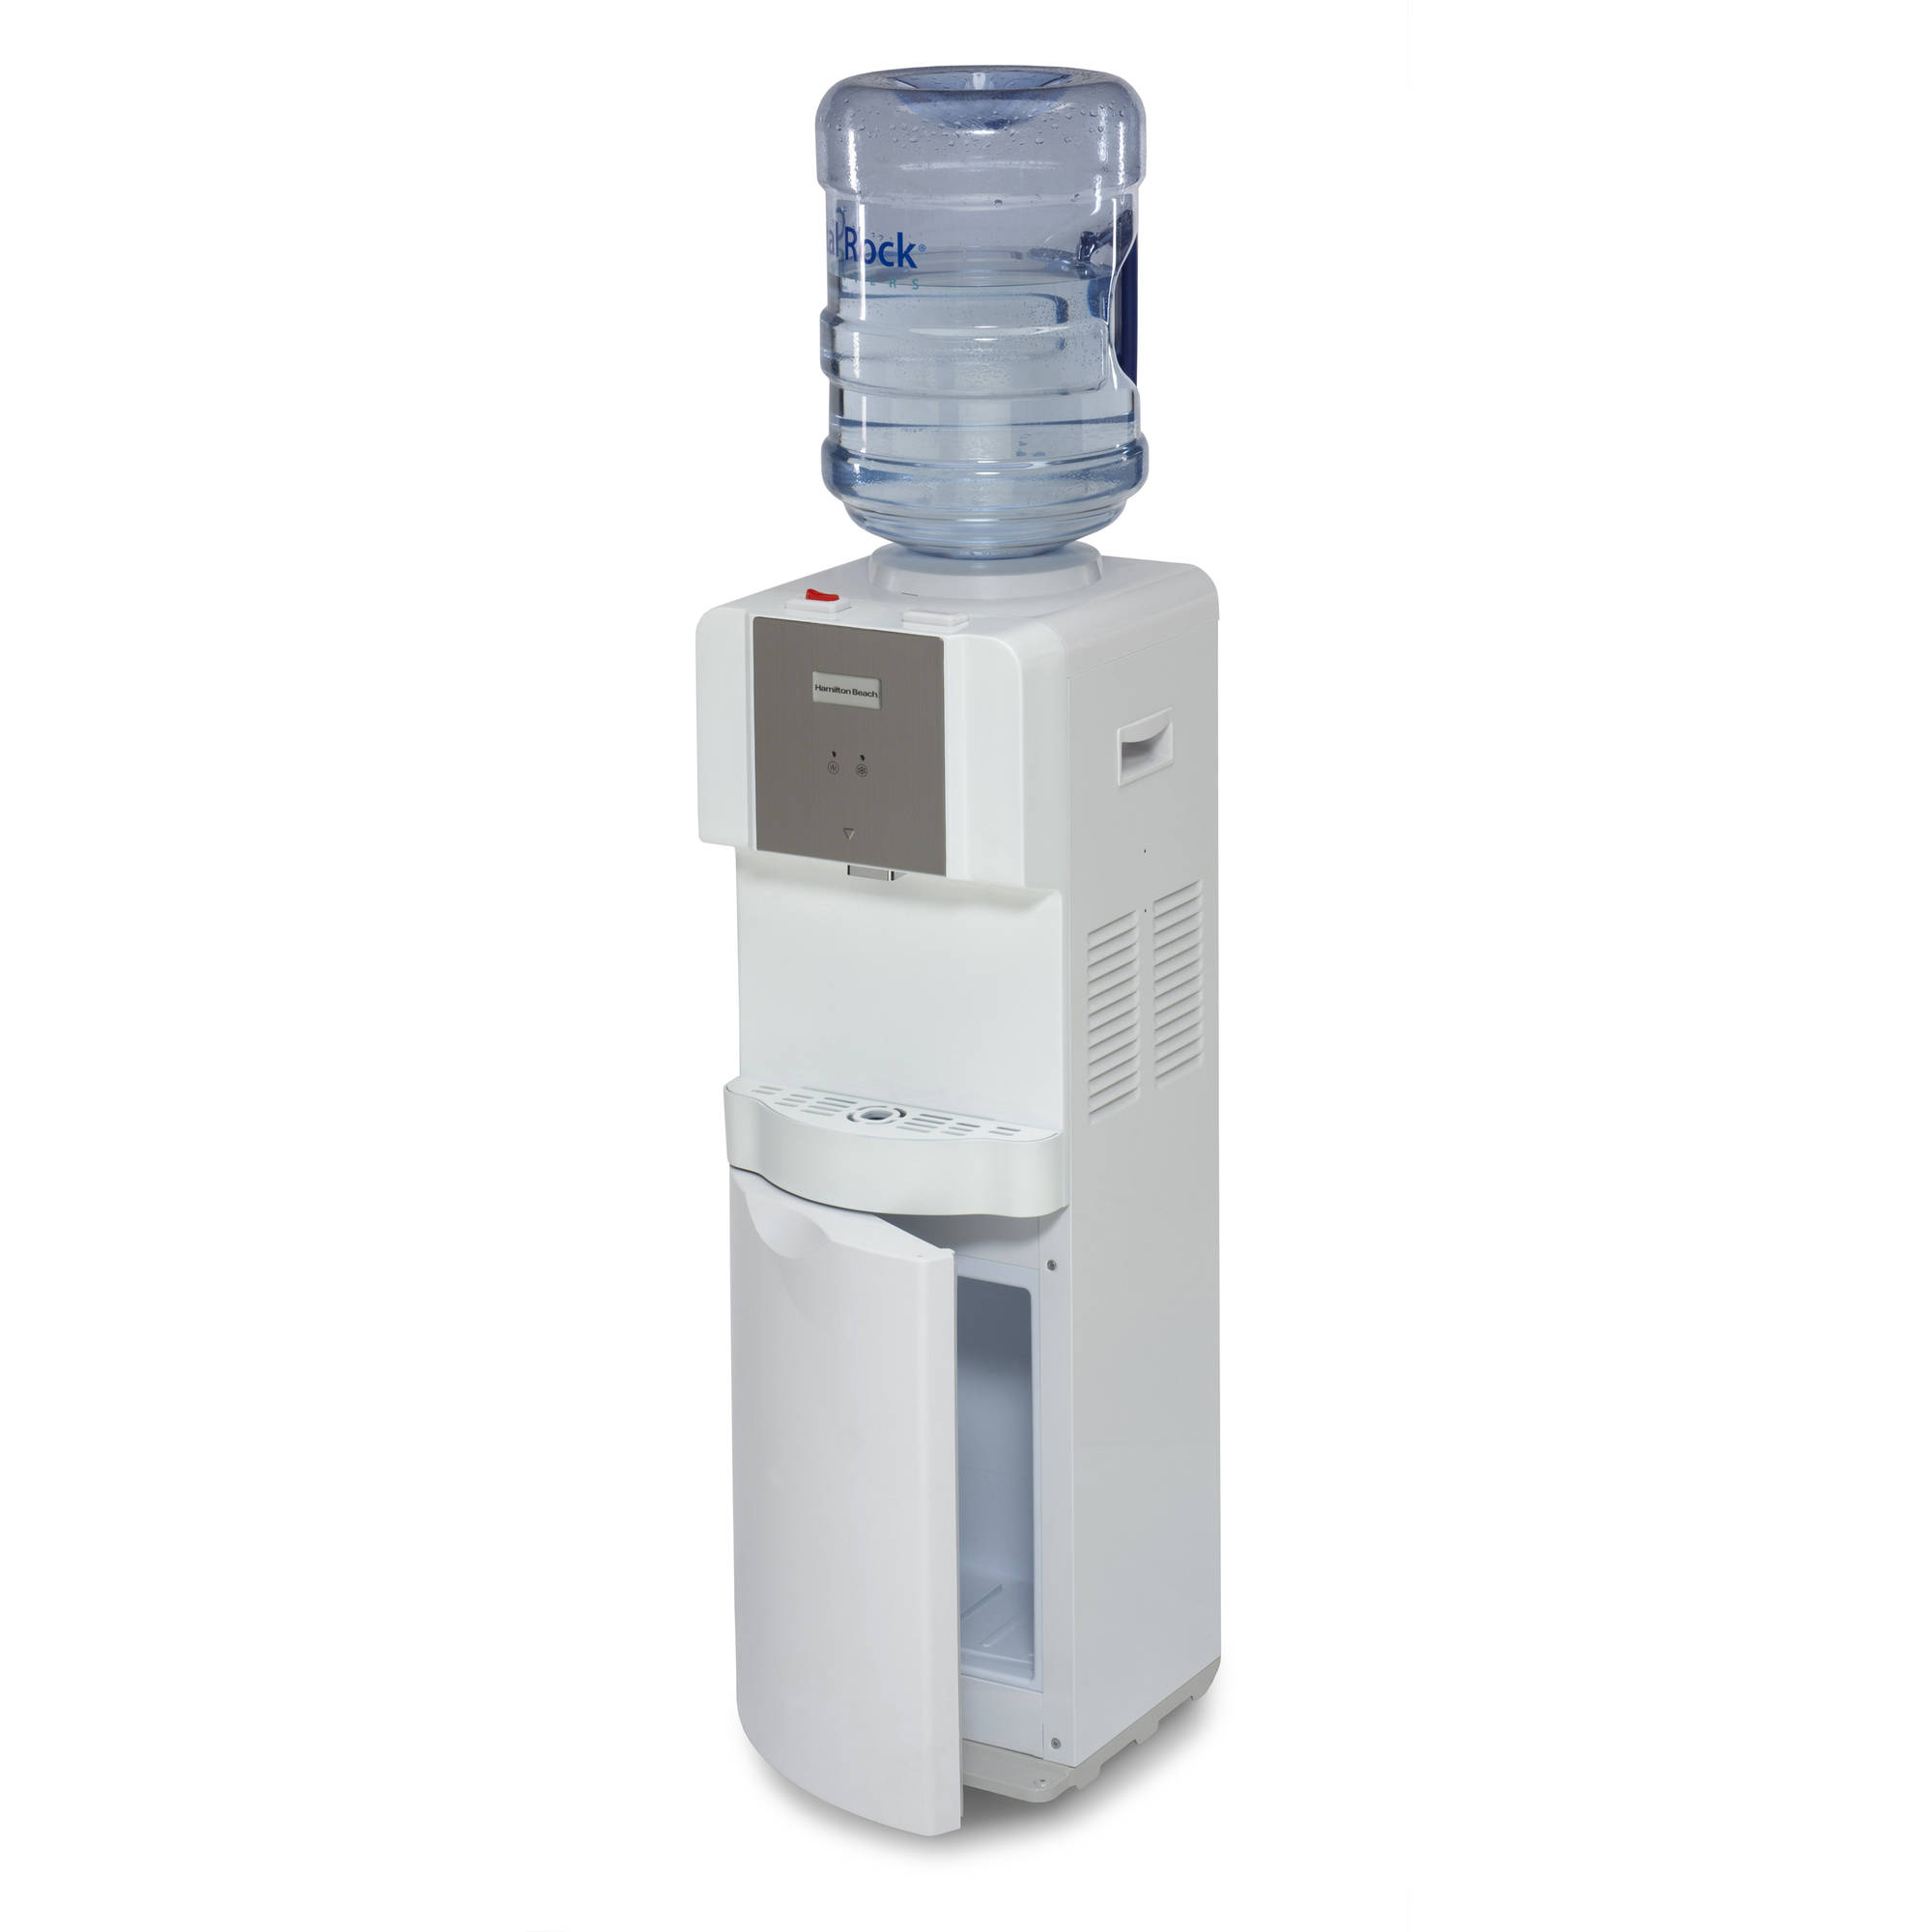 Hamilton Beach TL-1-4W Top Loading Water Dispenser with Storage Cabinet, Hot and Cold Temperatures, White